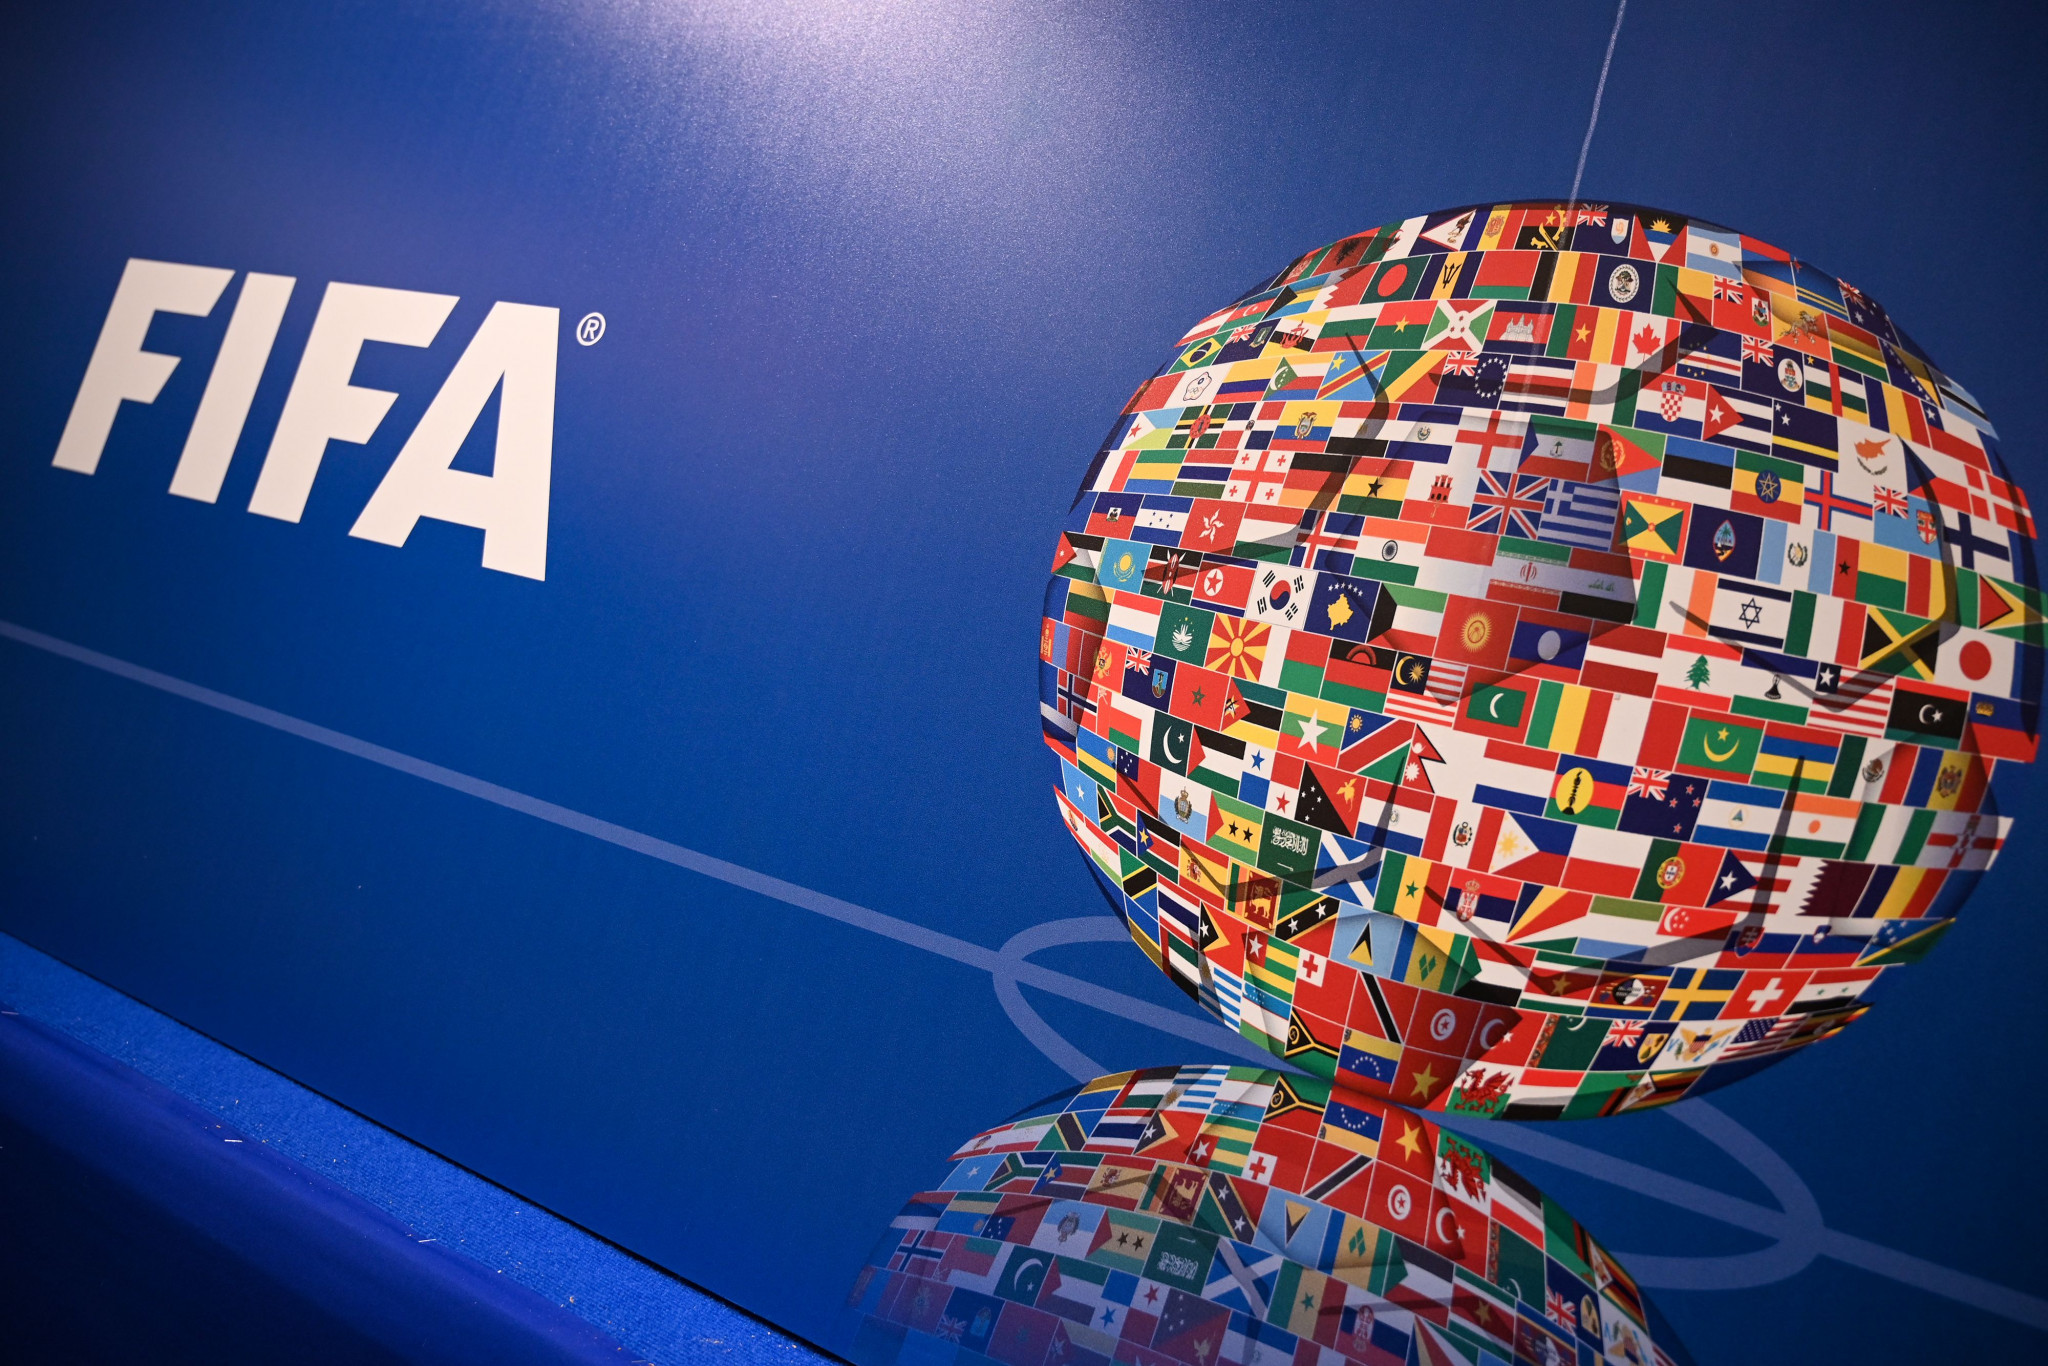 Sign of the times: FIFA looks to have generated more income from video gaming than football in 2020